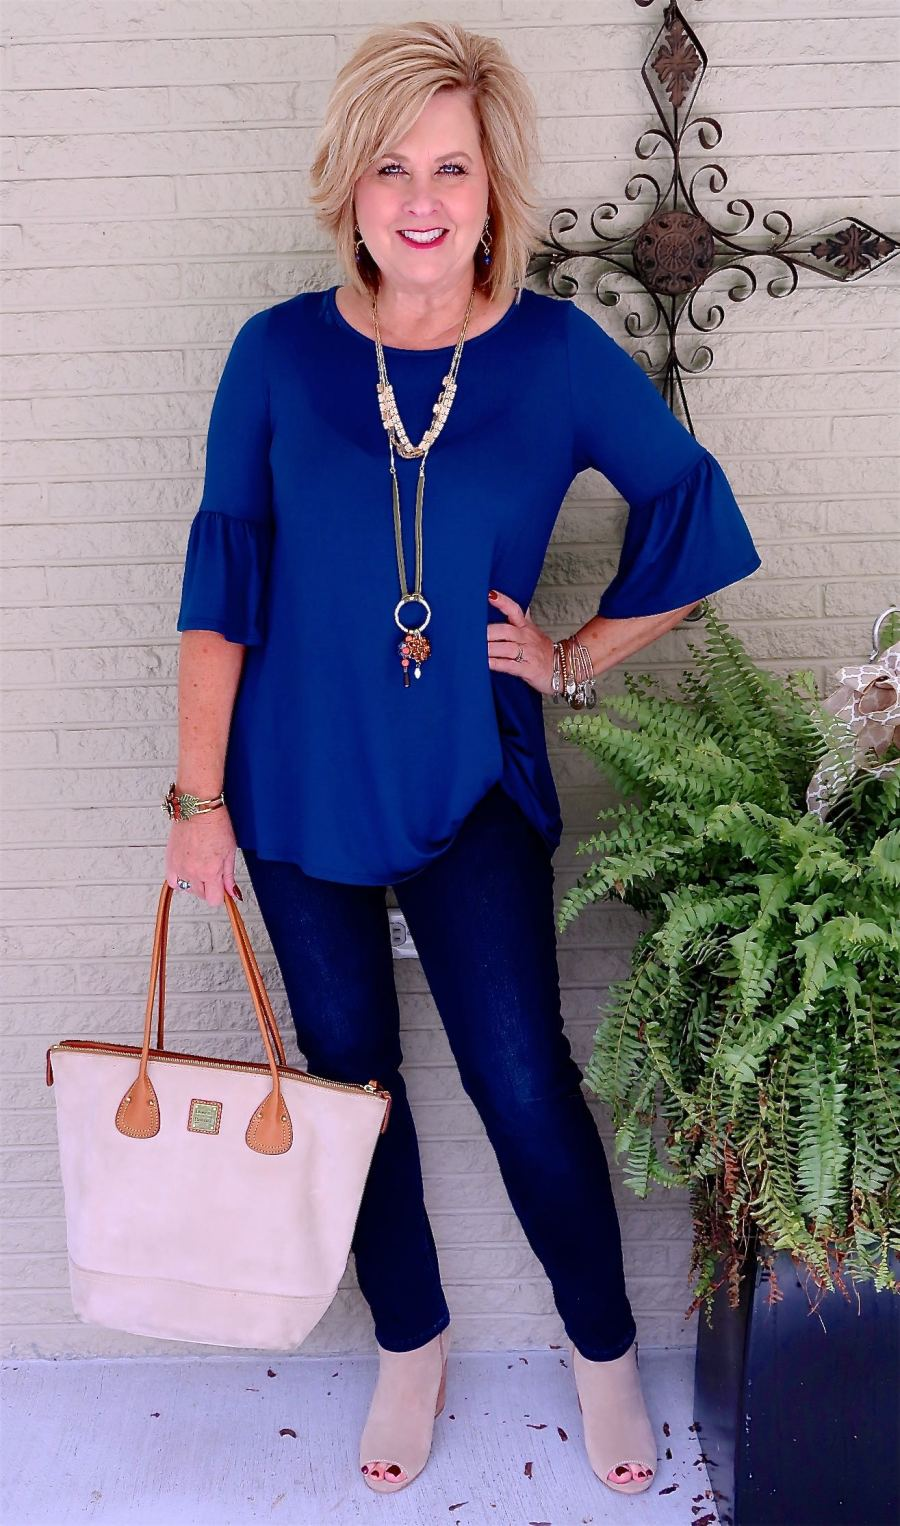 50 IS NOT OLD | IT IS ALL ABOUT THE SLEEVES